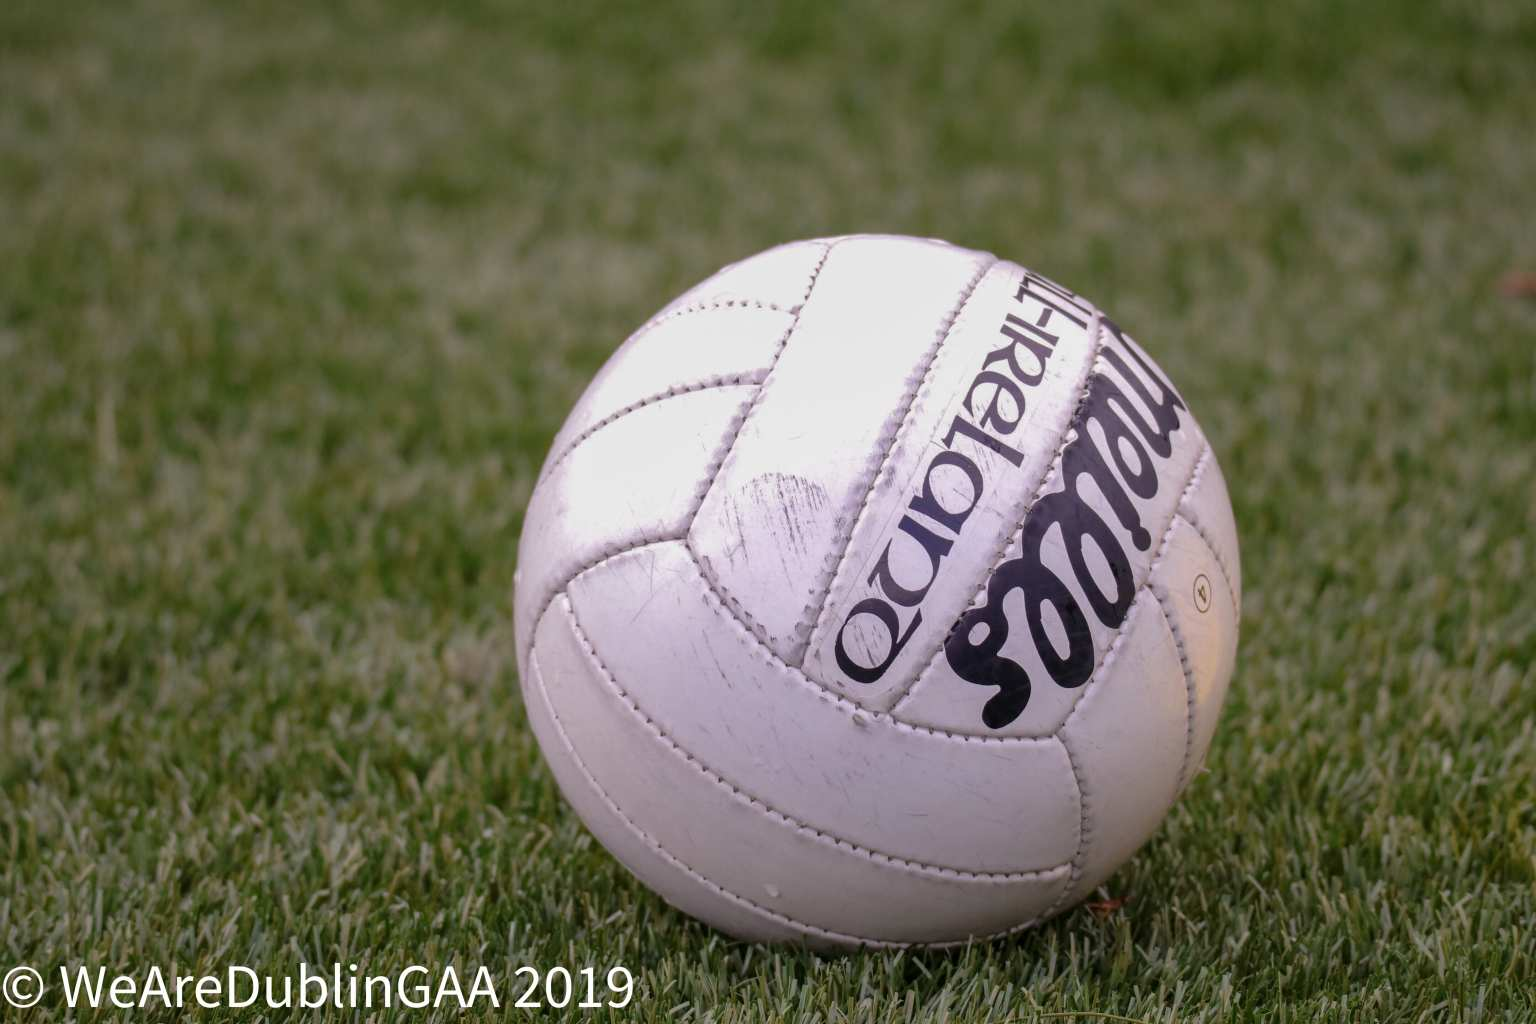 A white Gaelic football on a grass pitch to signify the Dublin LGFA club results.